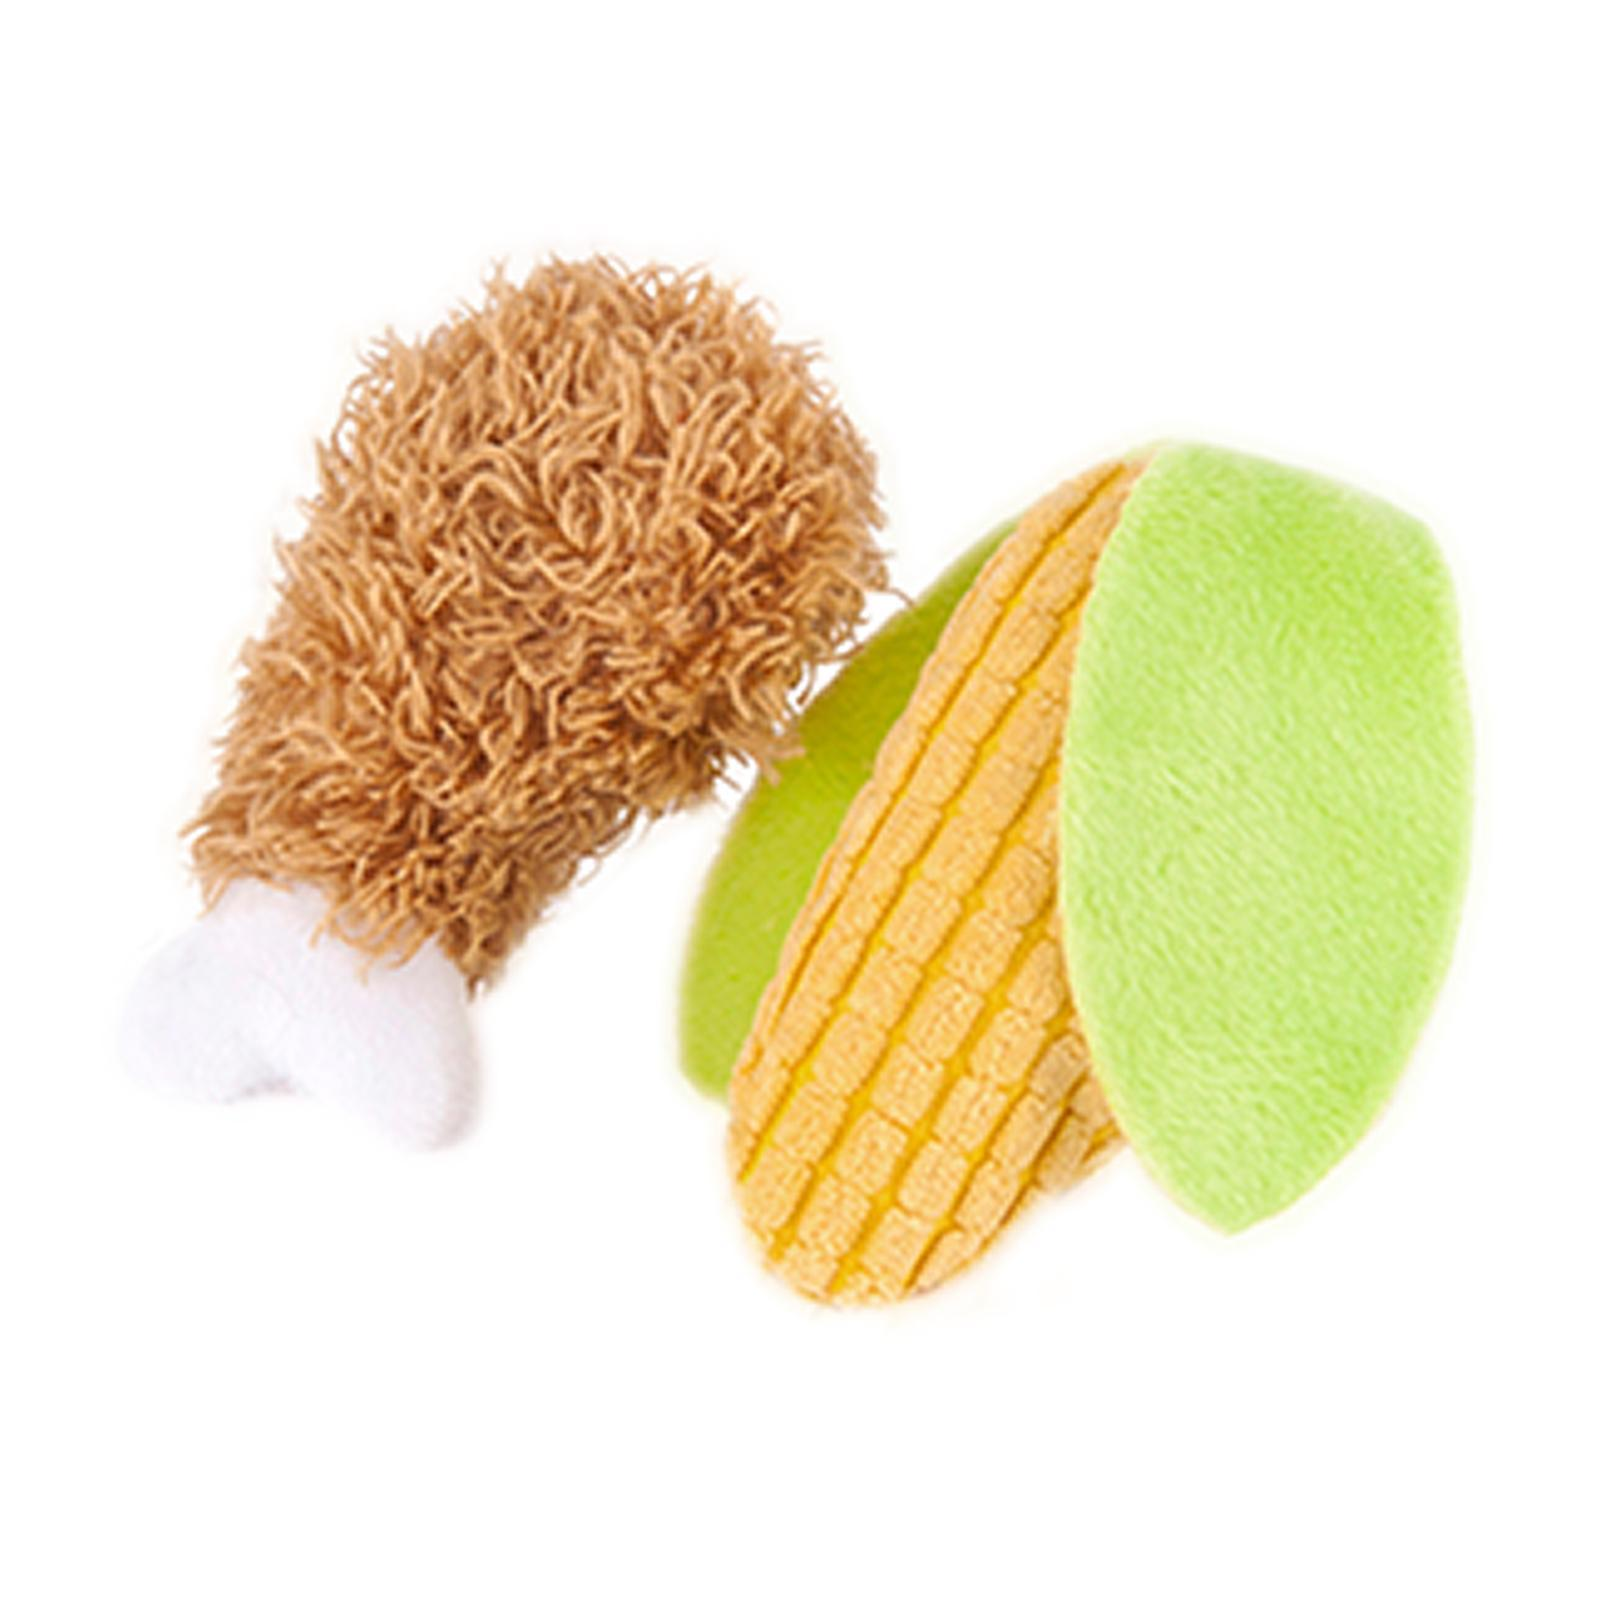 Ginger and Bear Cat Toy - Plush With Usda Organic Catnip - Perfect Picnic